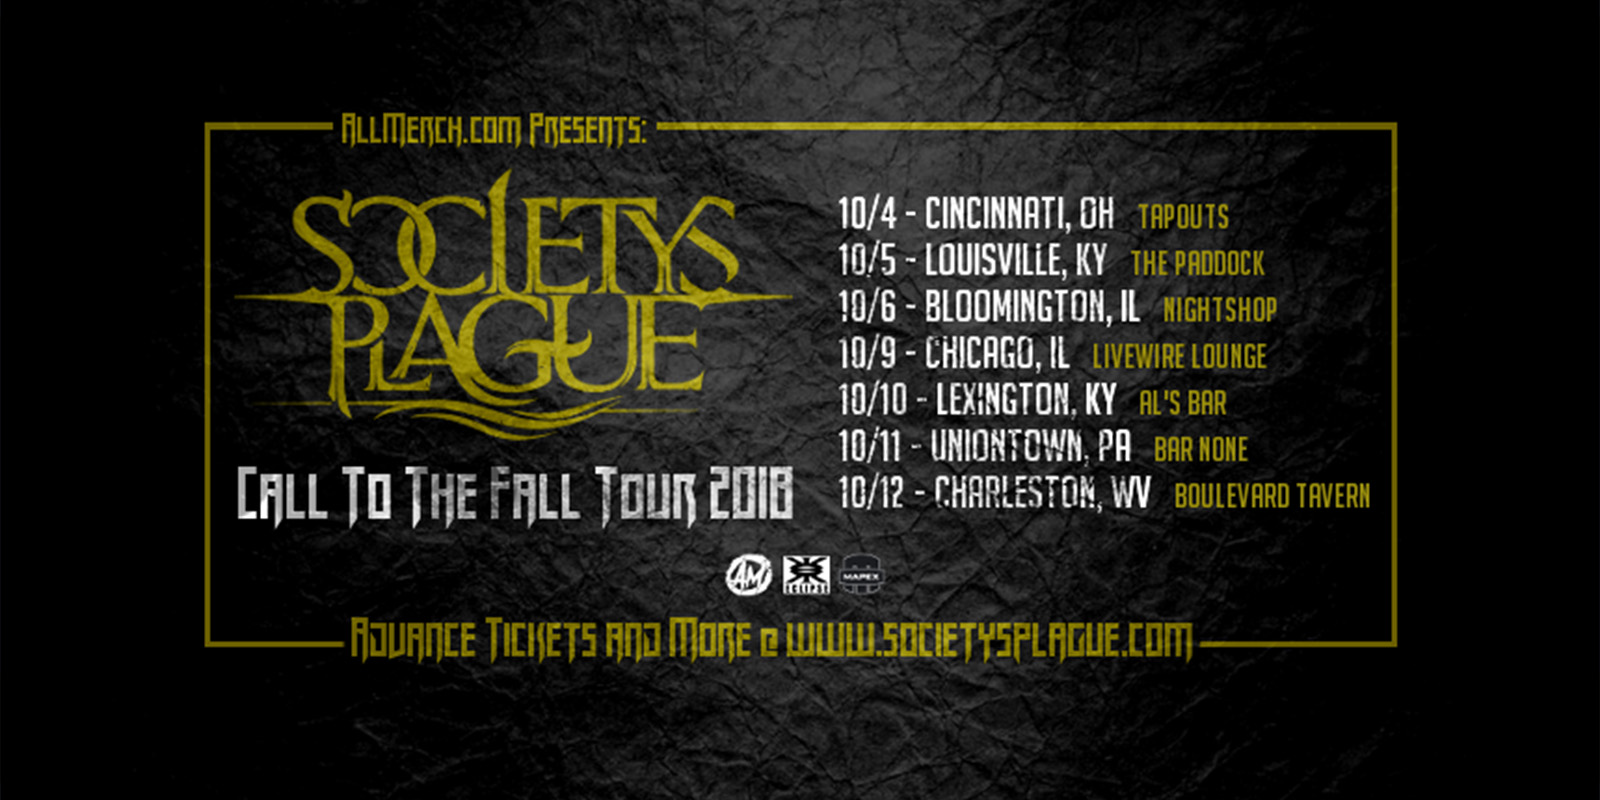 Societys-Plague-Call-to-the-Fall-tour-2018-horz-1600